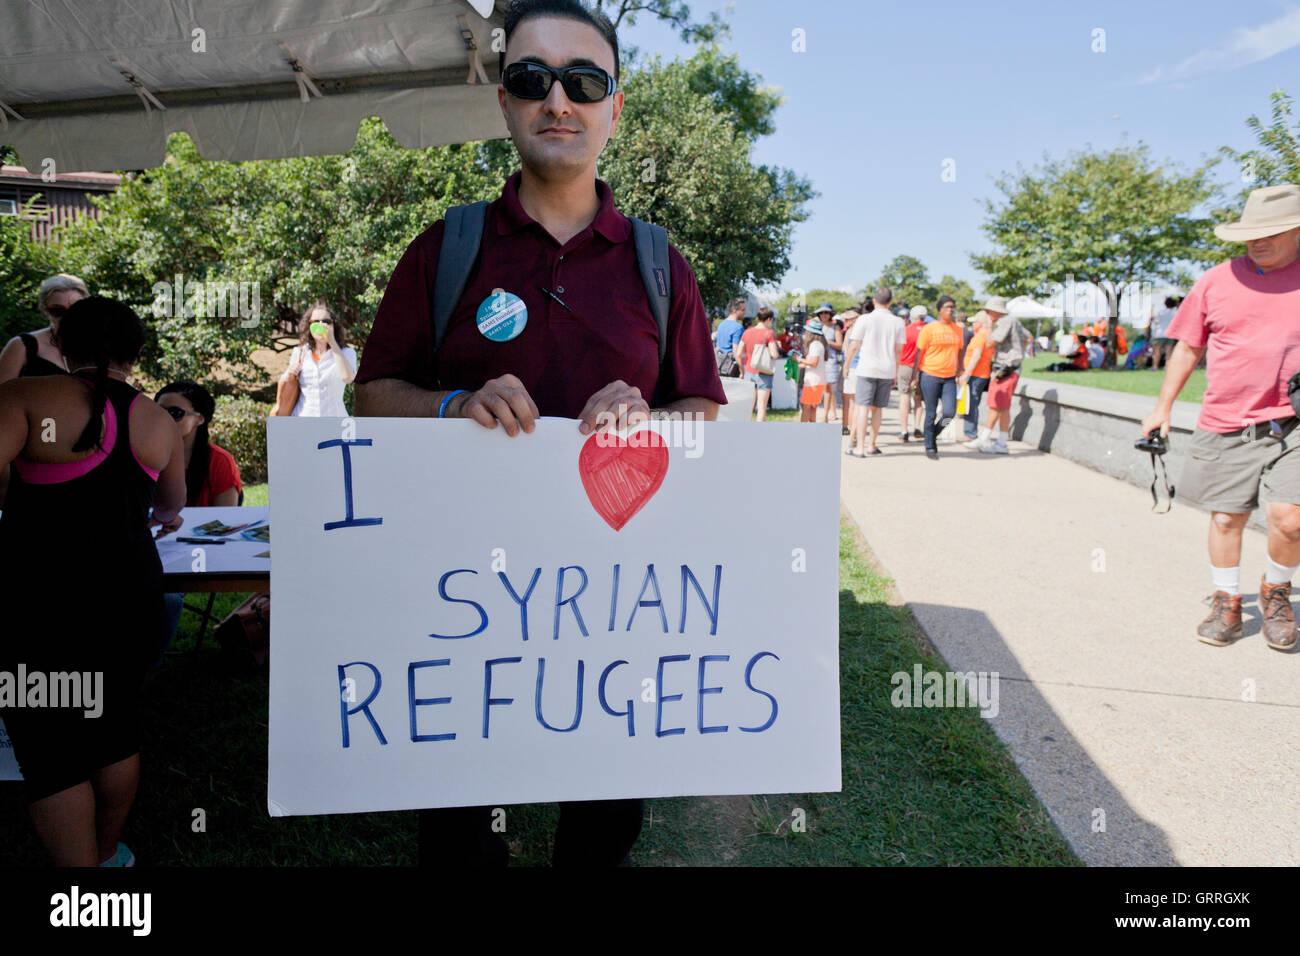 Syrian refugee supporter holding sign - Washington, DC USA - Stock Image